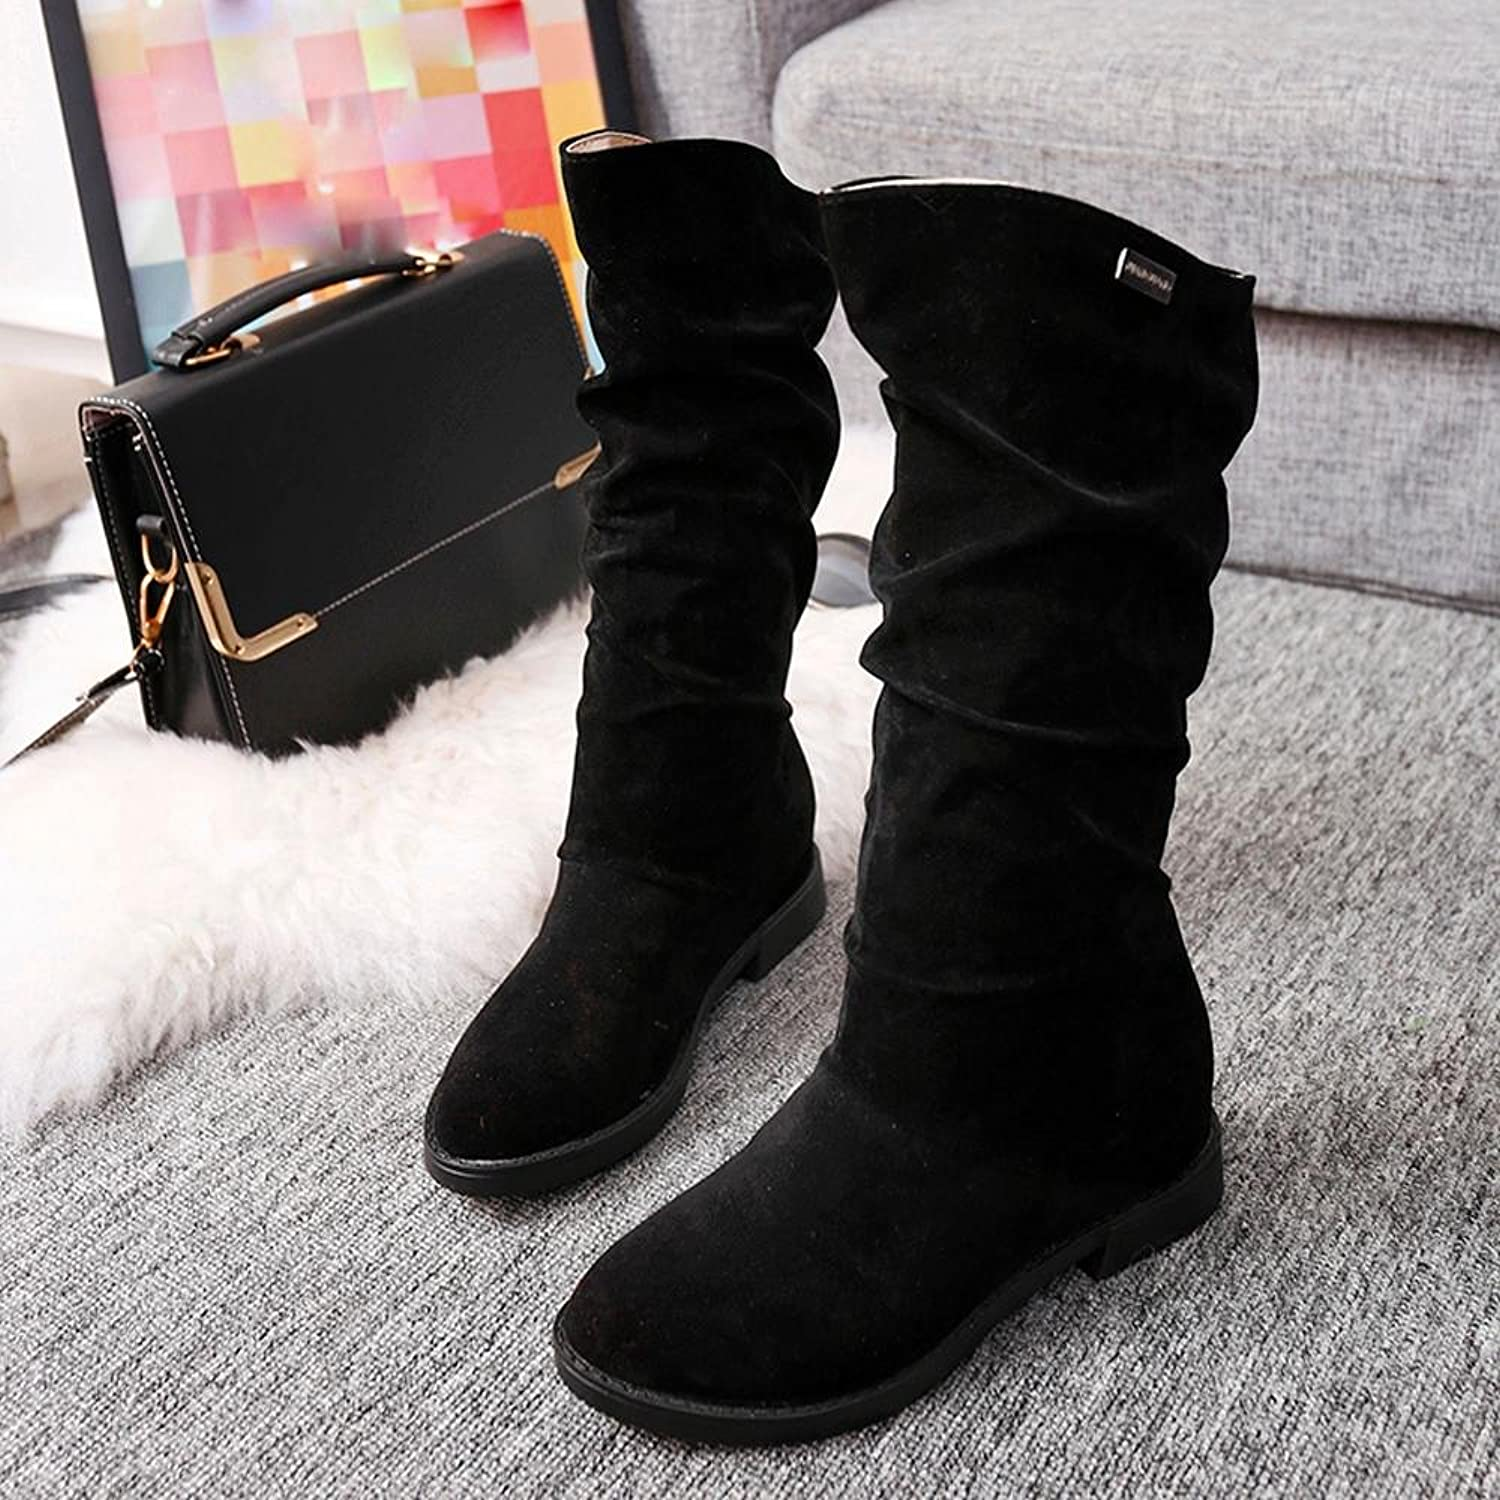 Women Snow Boots, Xinantime Autumn Winter Sweet Boots Stylish Flat Flock  Shoes: Amazon.co.uk: Shoes & Bags